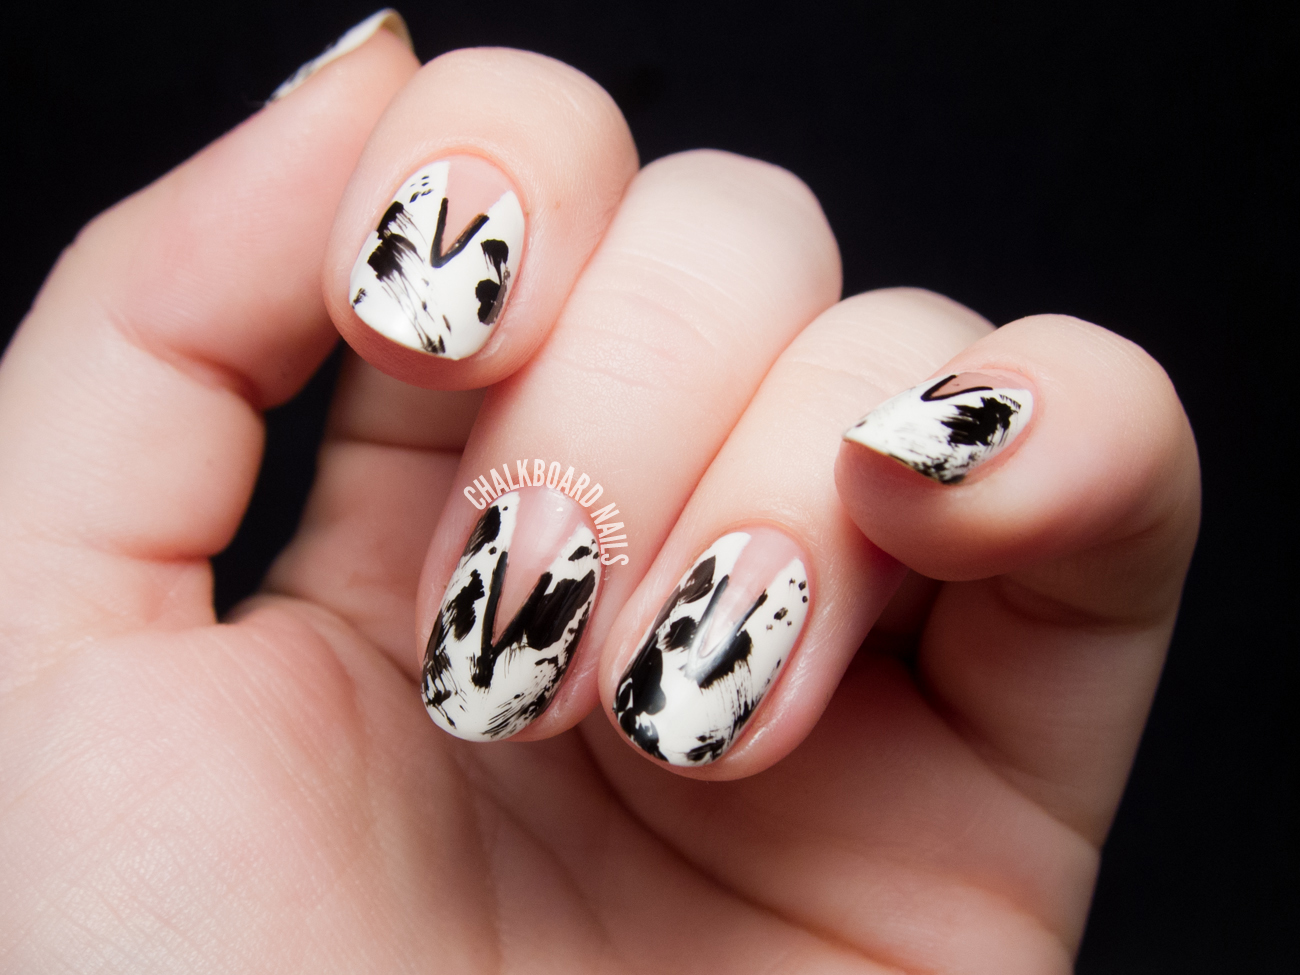 Inky Negative Space Nail Art Inspired by Donna Karan | Chalkboard ...